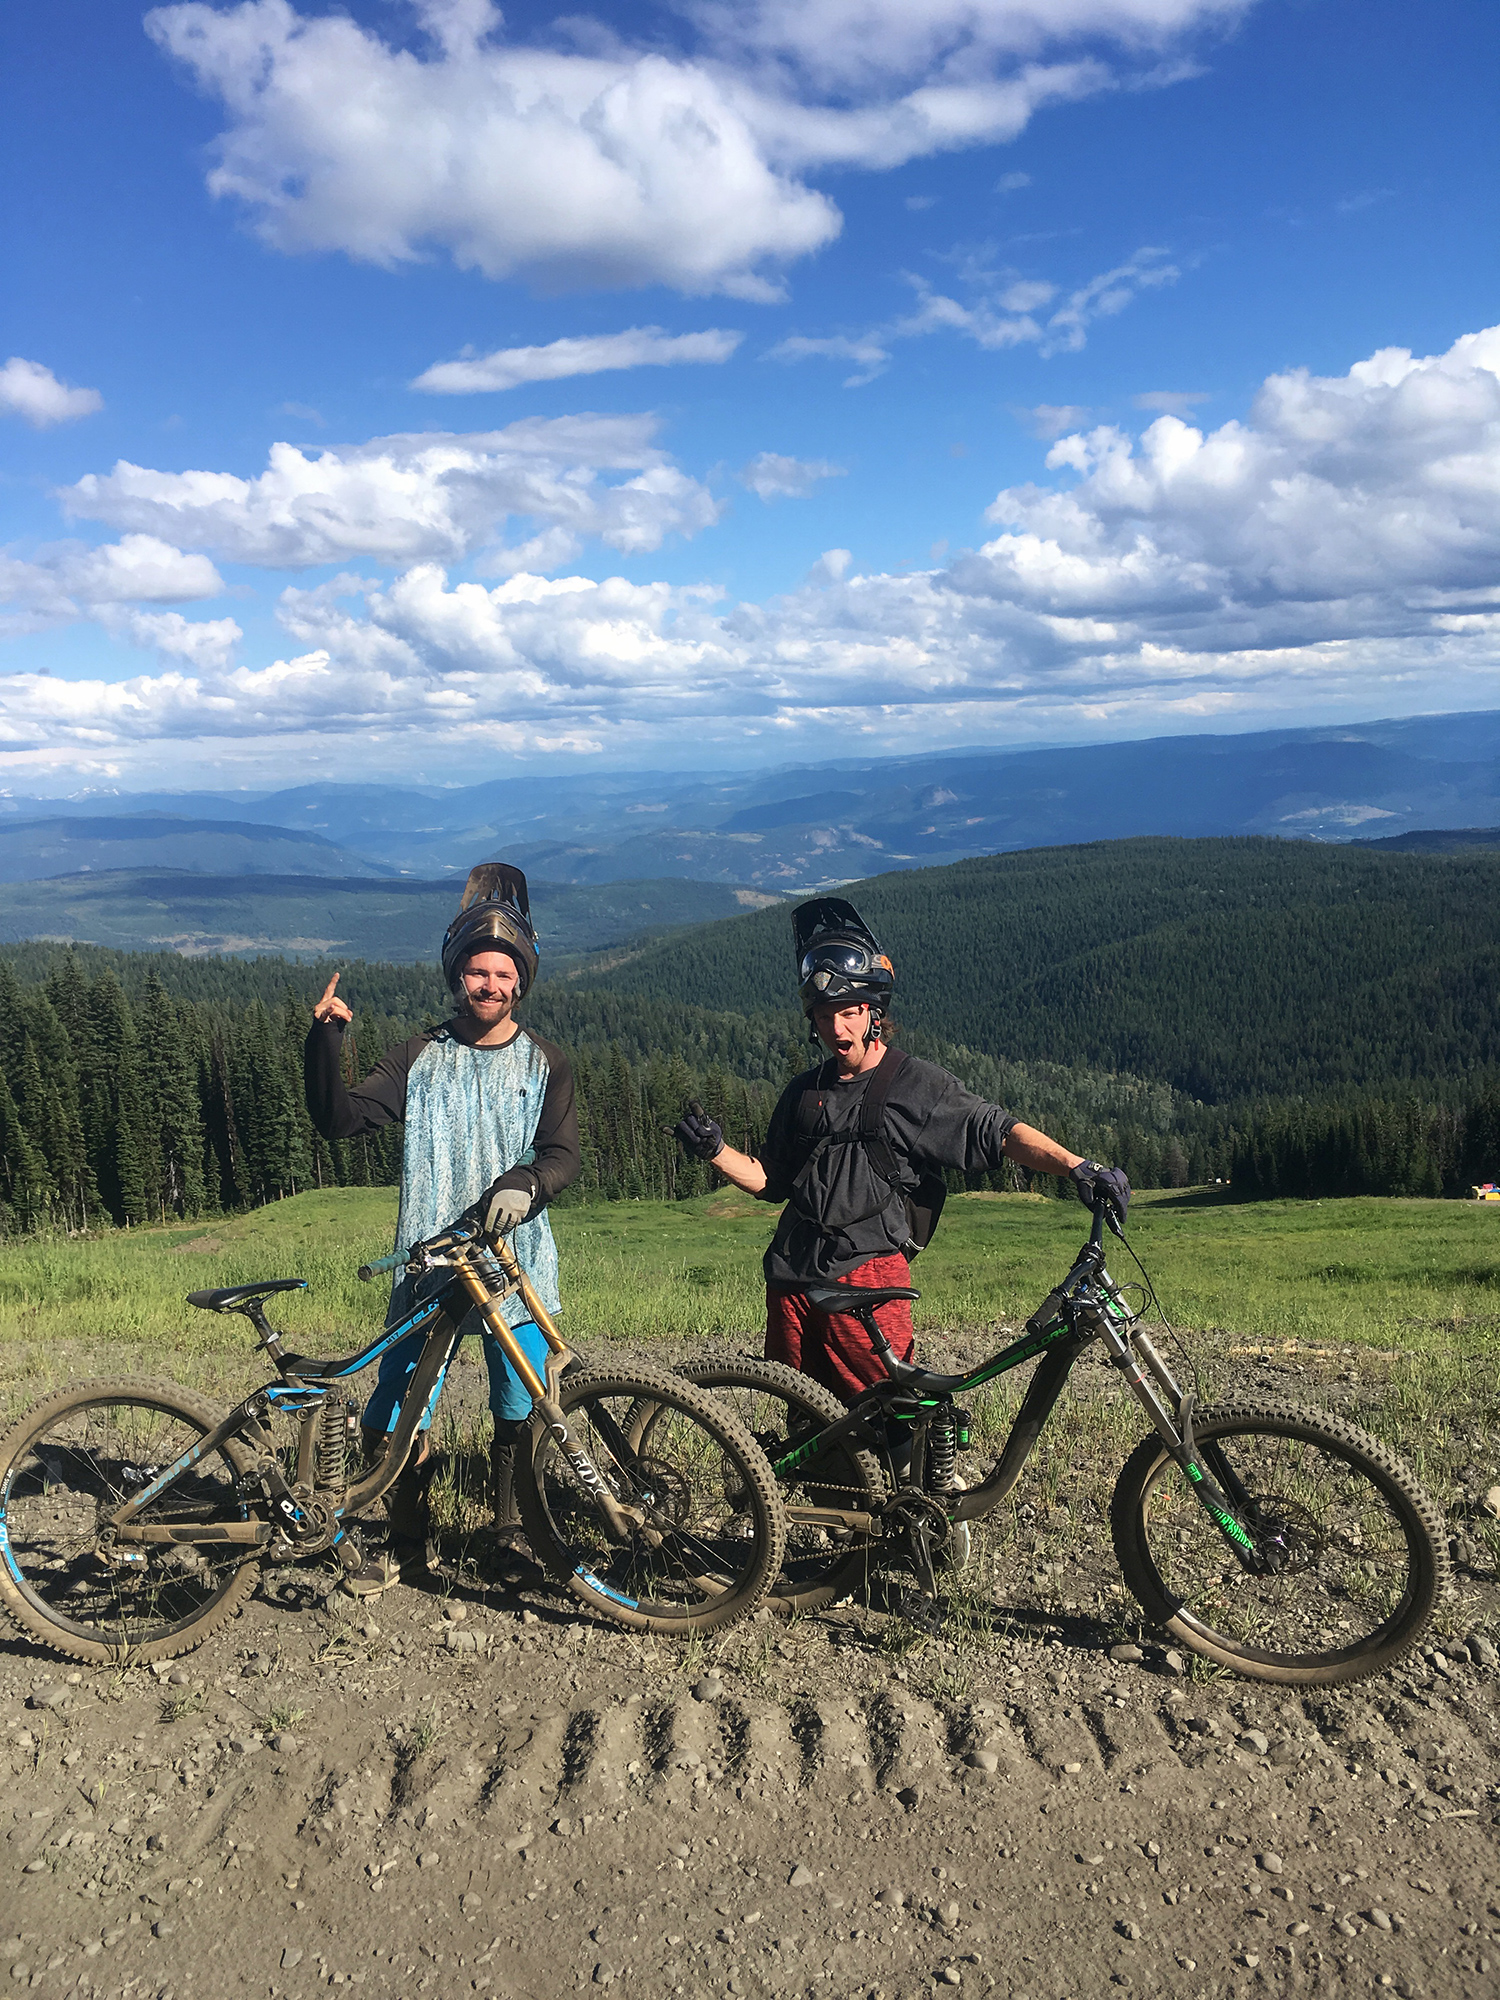 Myself and Woodsy after a rad day of shredding ! :D